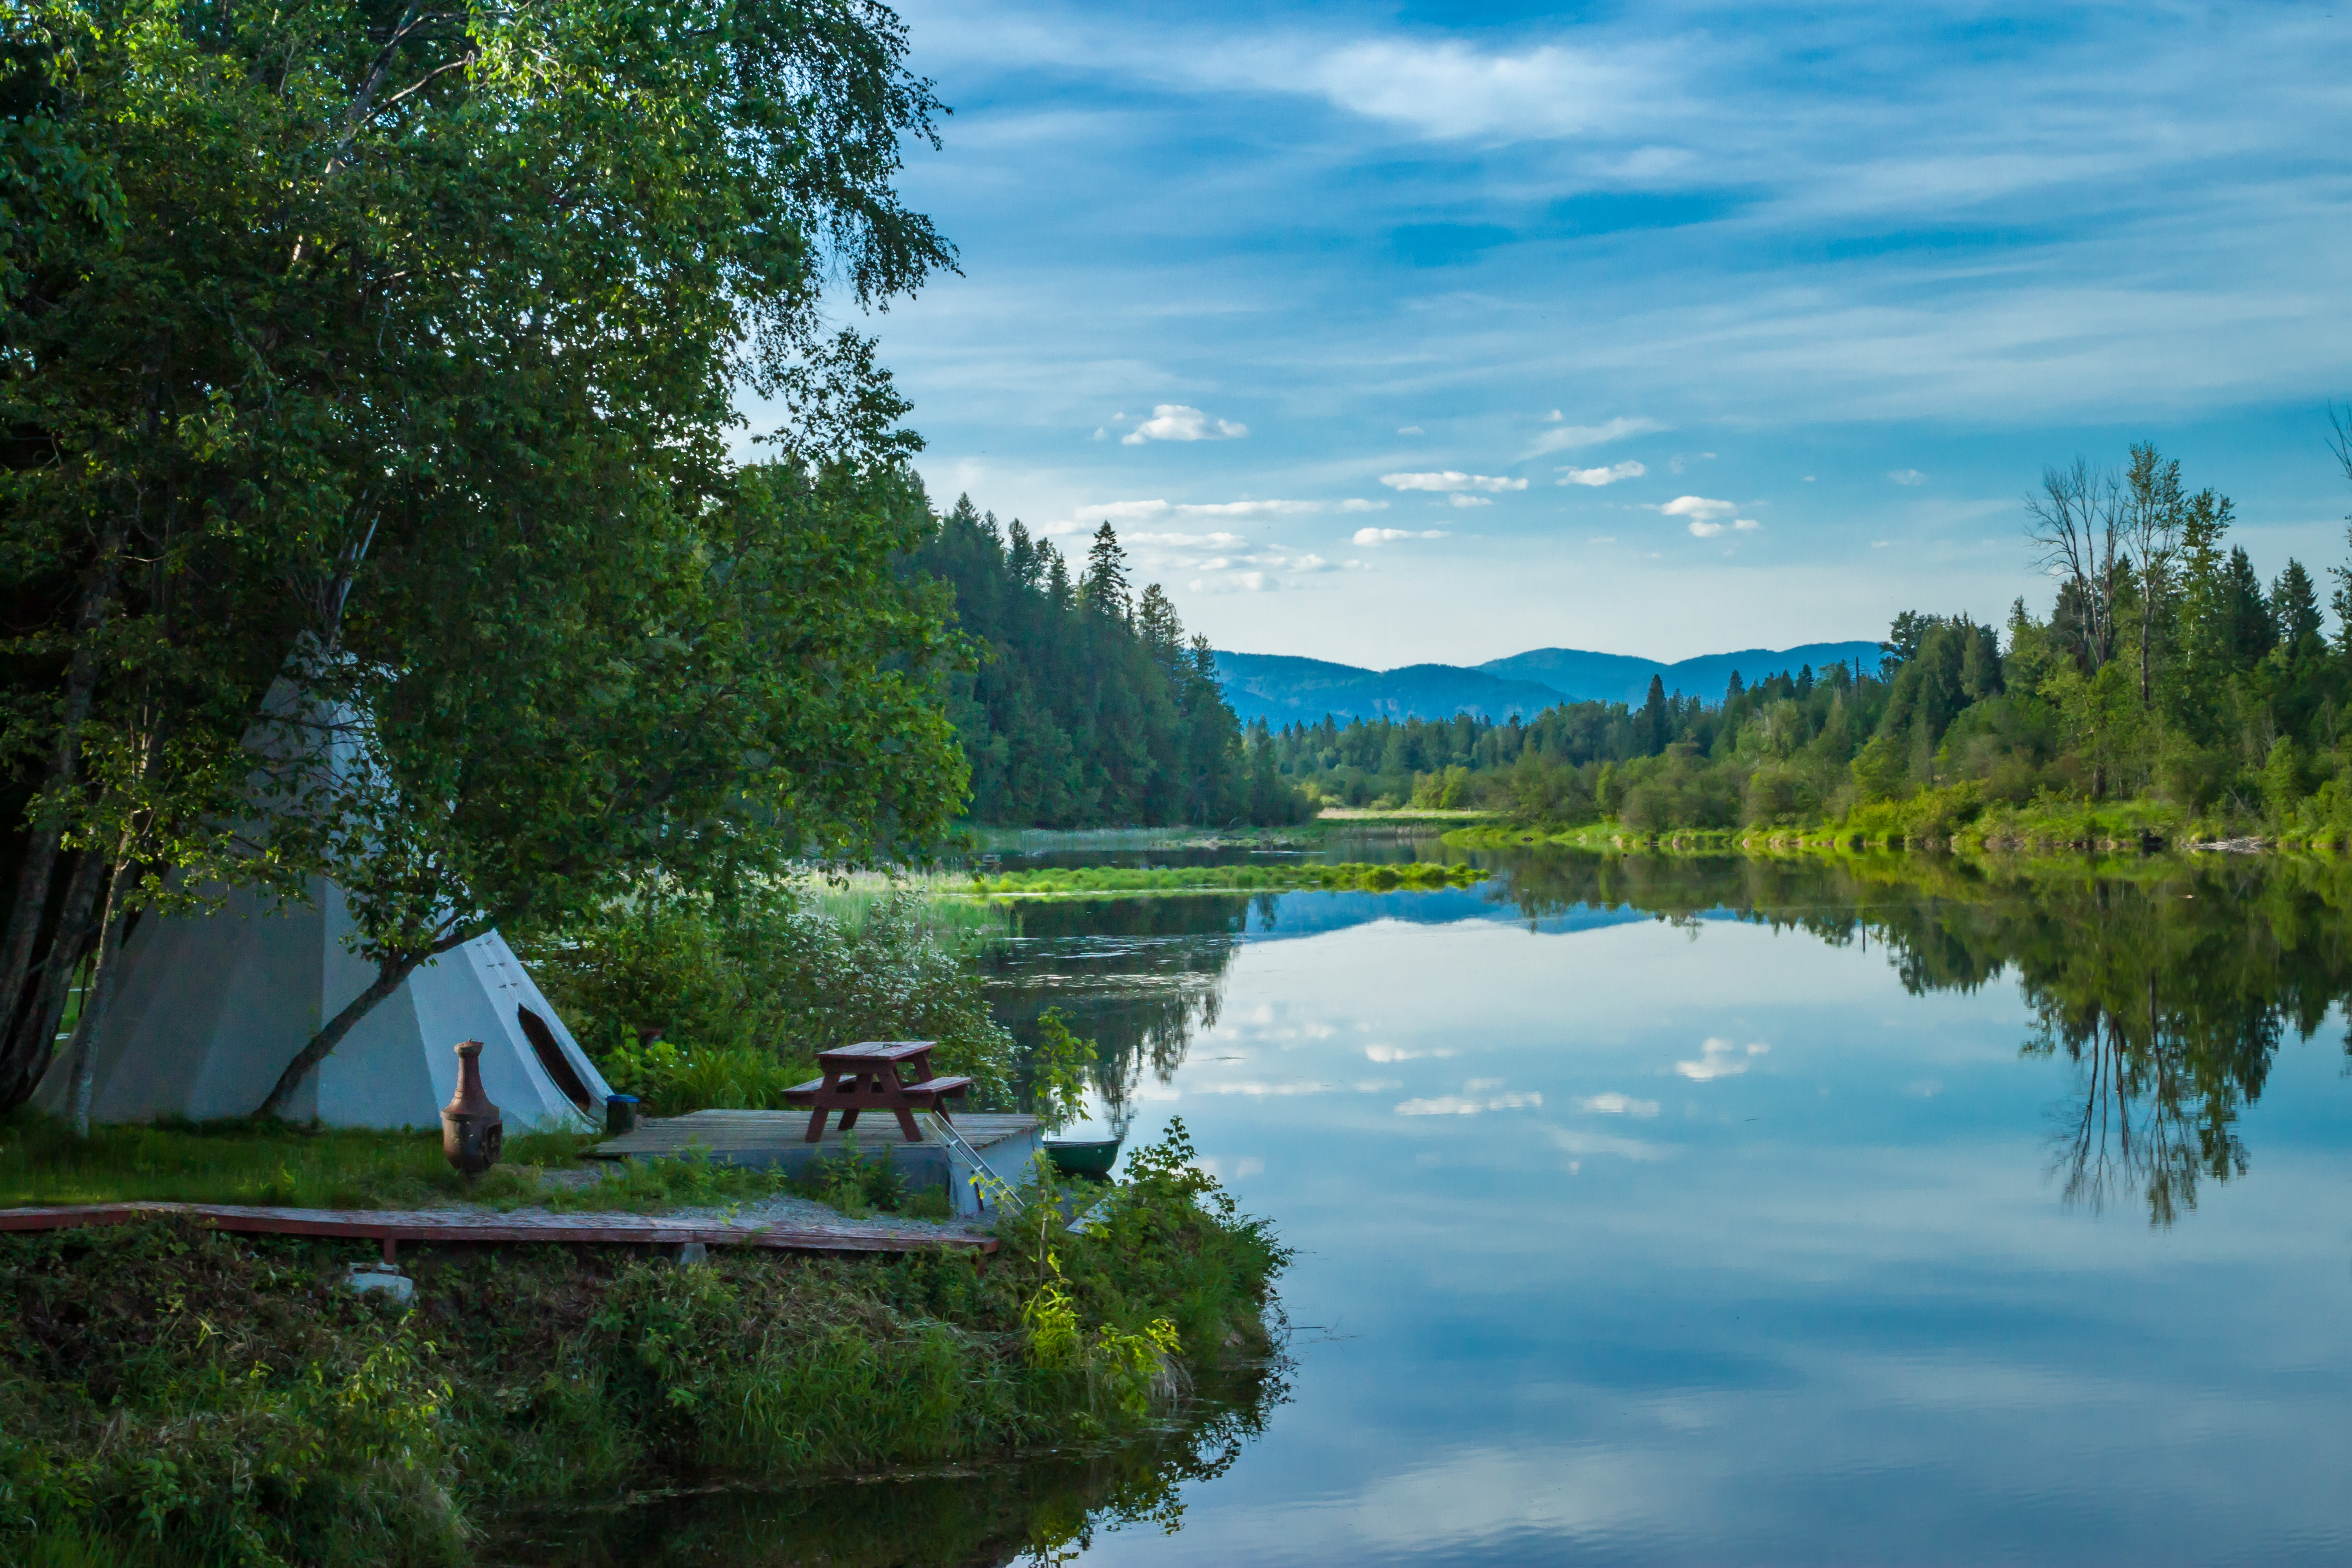 Glamping, Tipi, photo by Tim Peterson on Unsplash